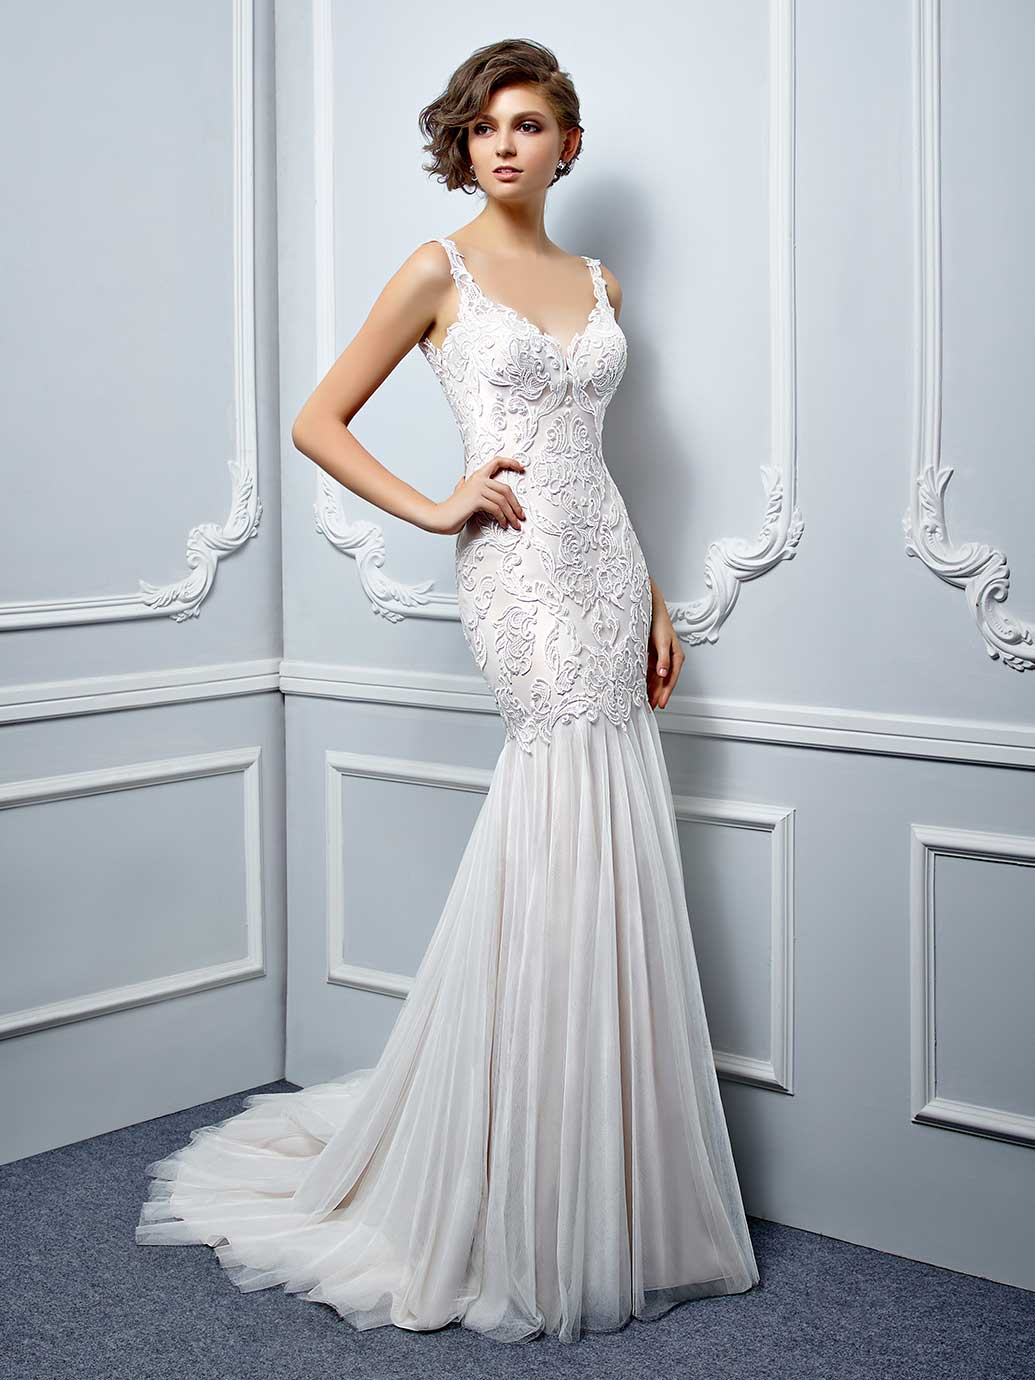 Enzoani Wedding Dress Low back wedding dress